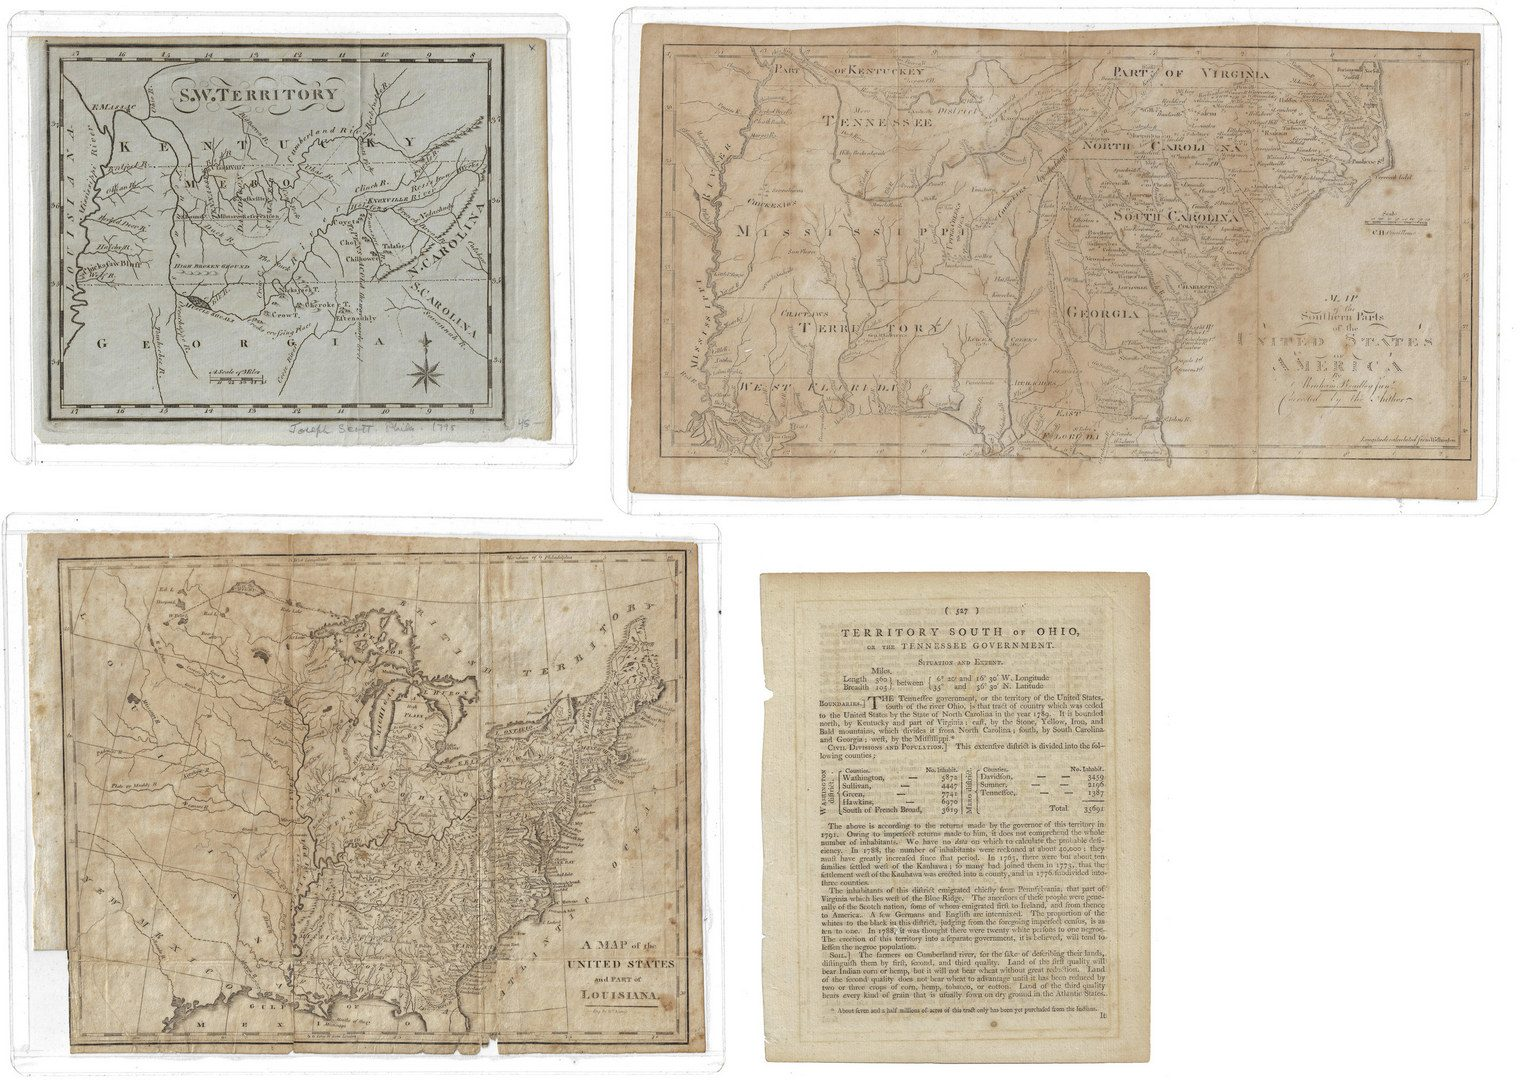 Lot 285: 3 Early Southern and TN Maps, inc. Mero District plus book excerpt